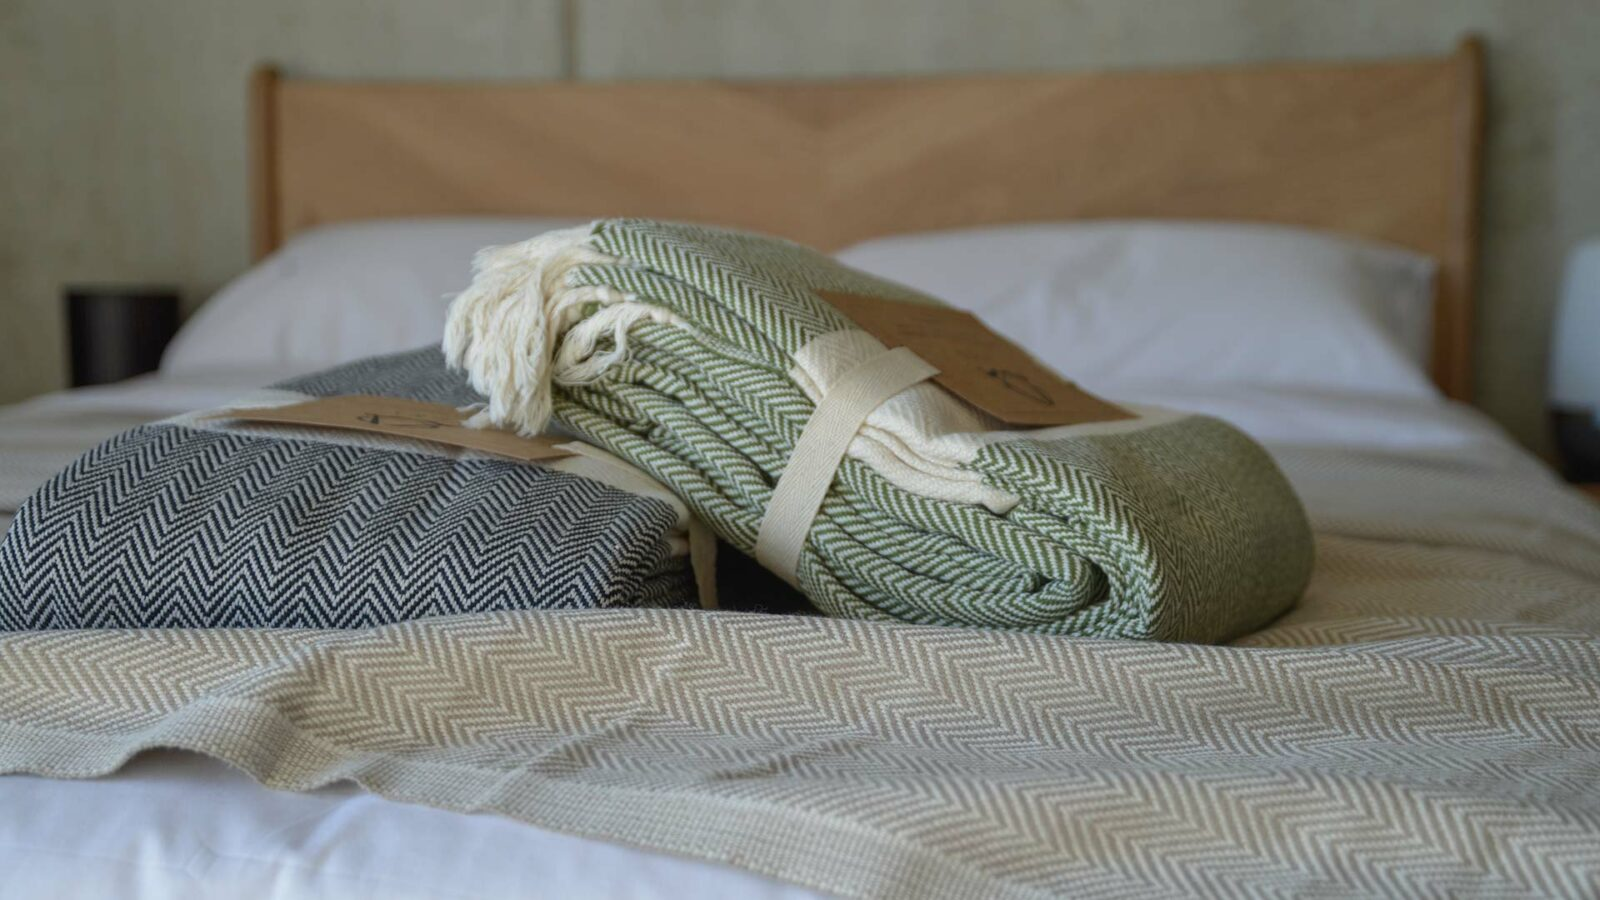 ethically made woven cotton blankets with herringbone weave and in 3 colour options